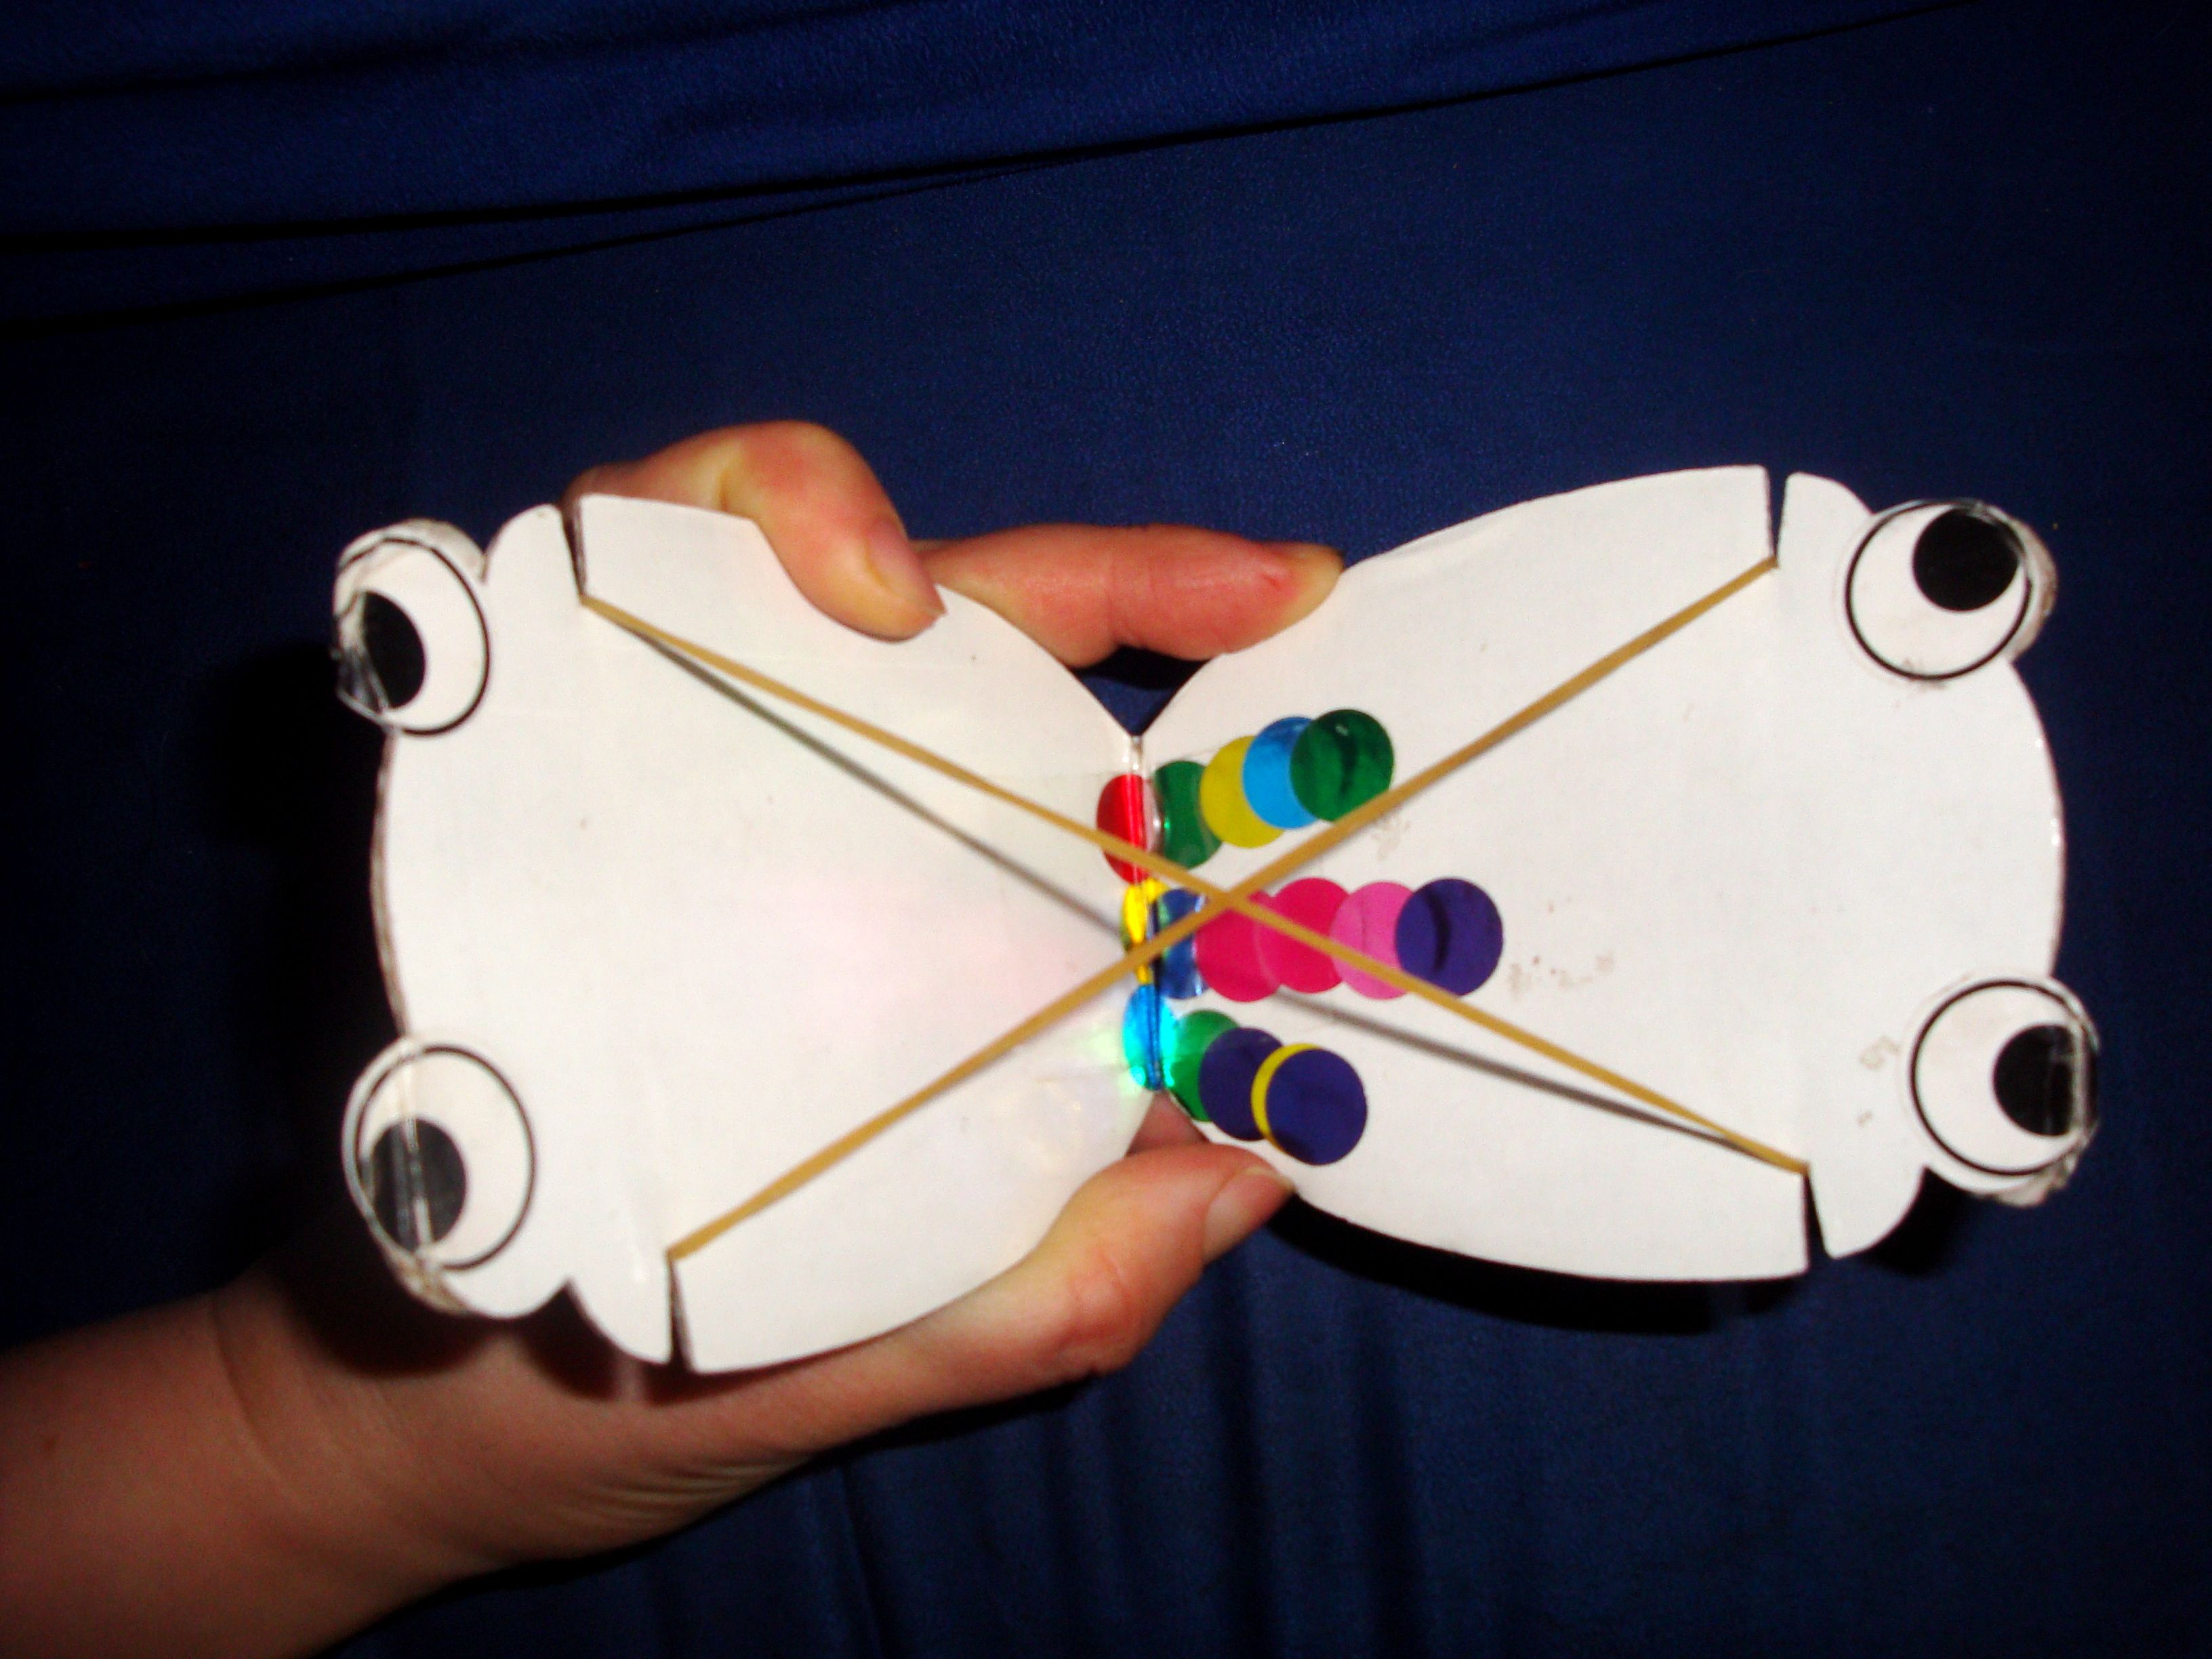 Photo and video master-class on weaving turtle from rubber bands